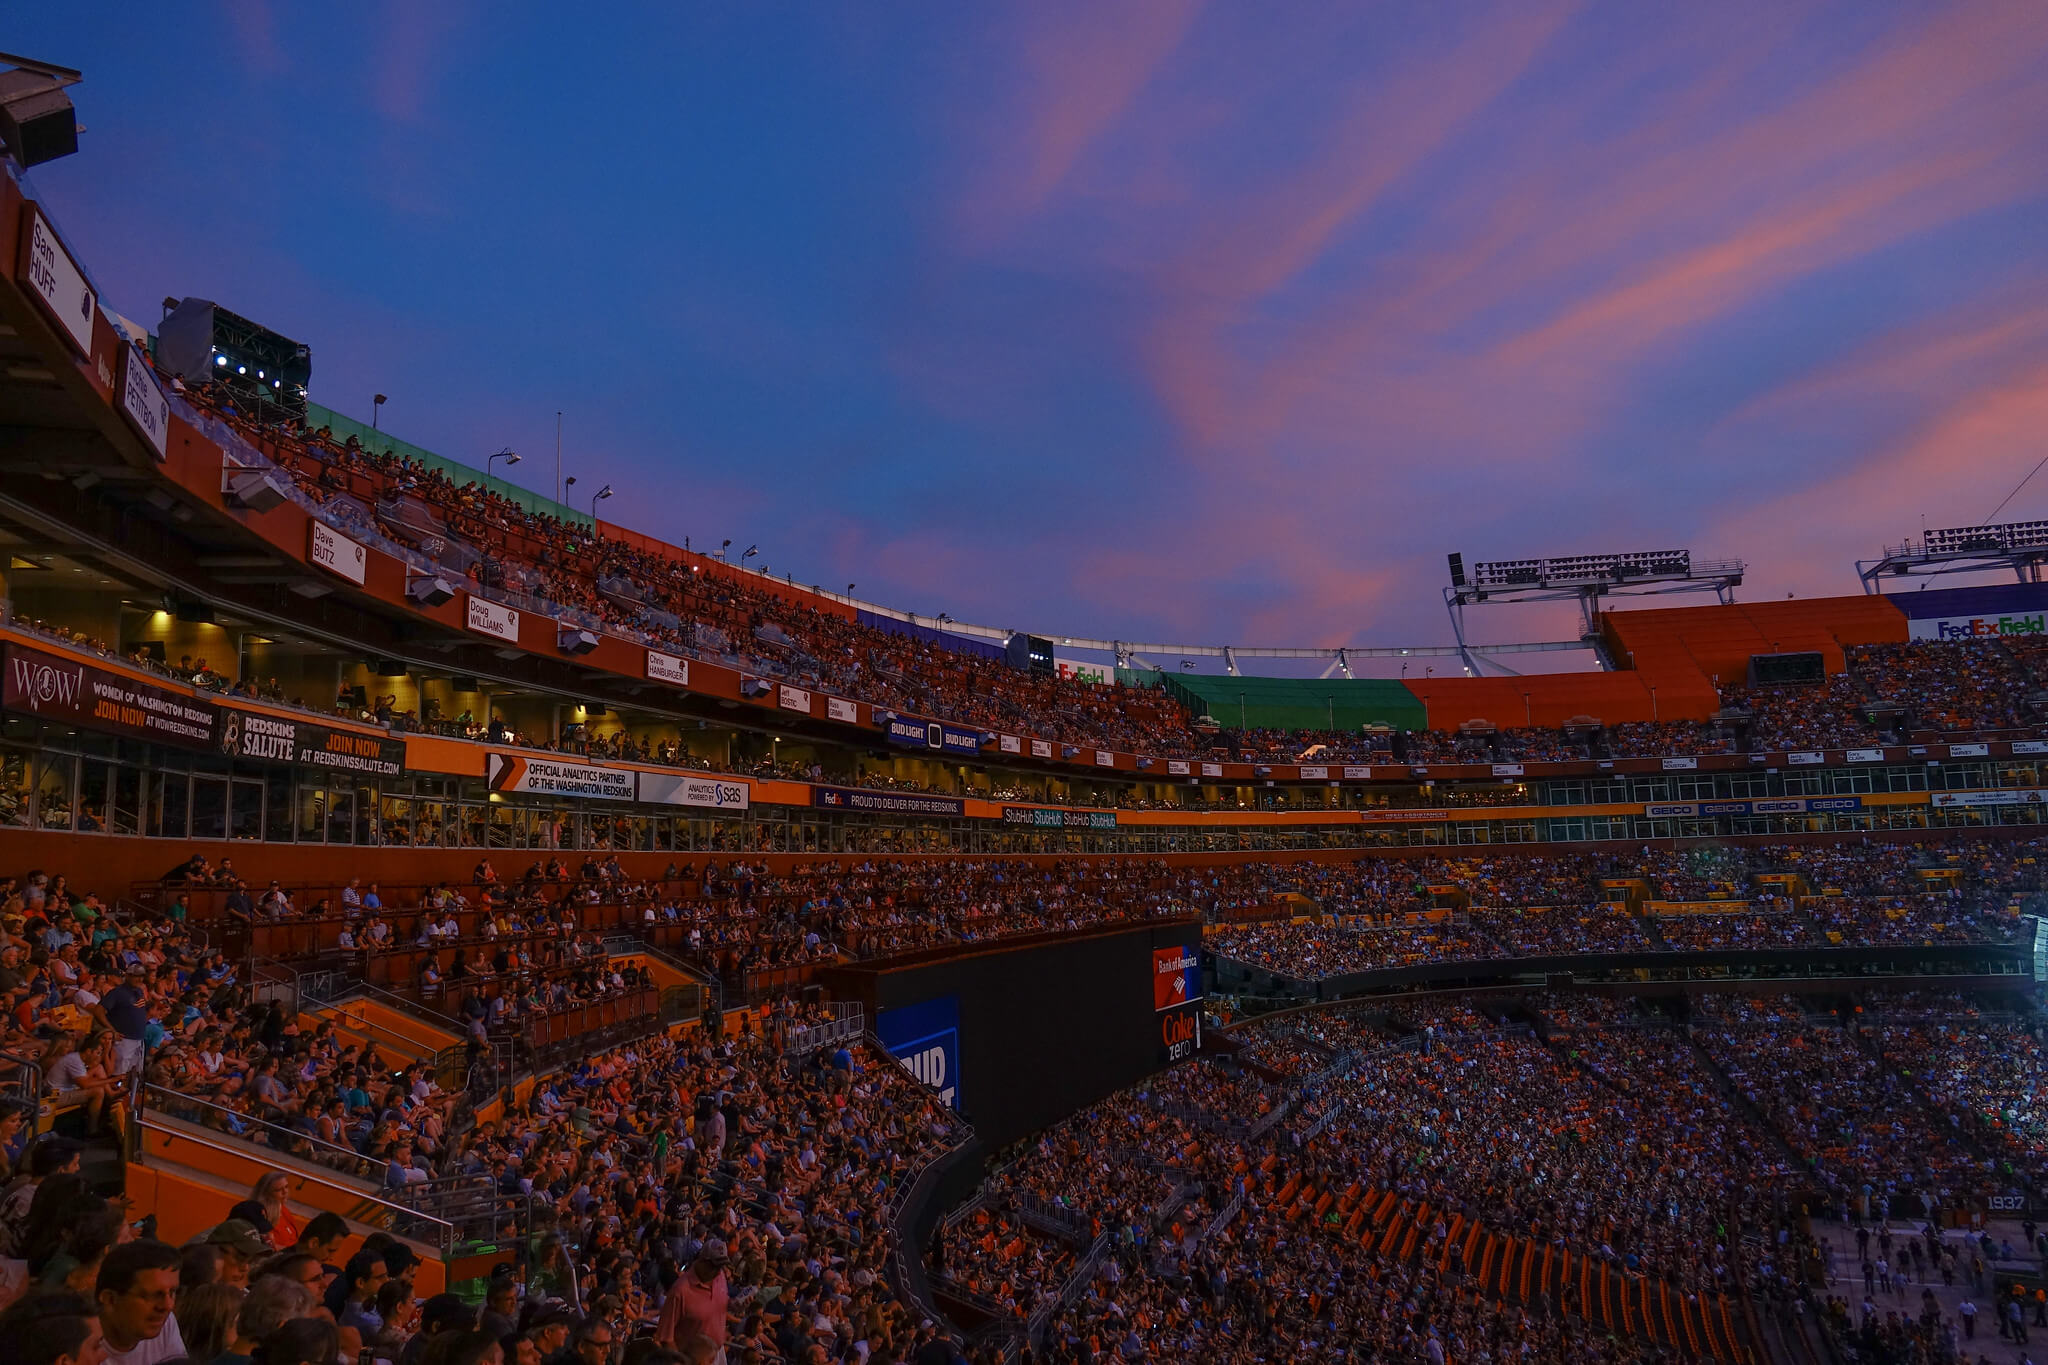 Beautiful sky at FedEx Field home of the Washington Redskins